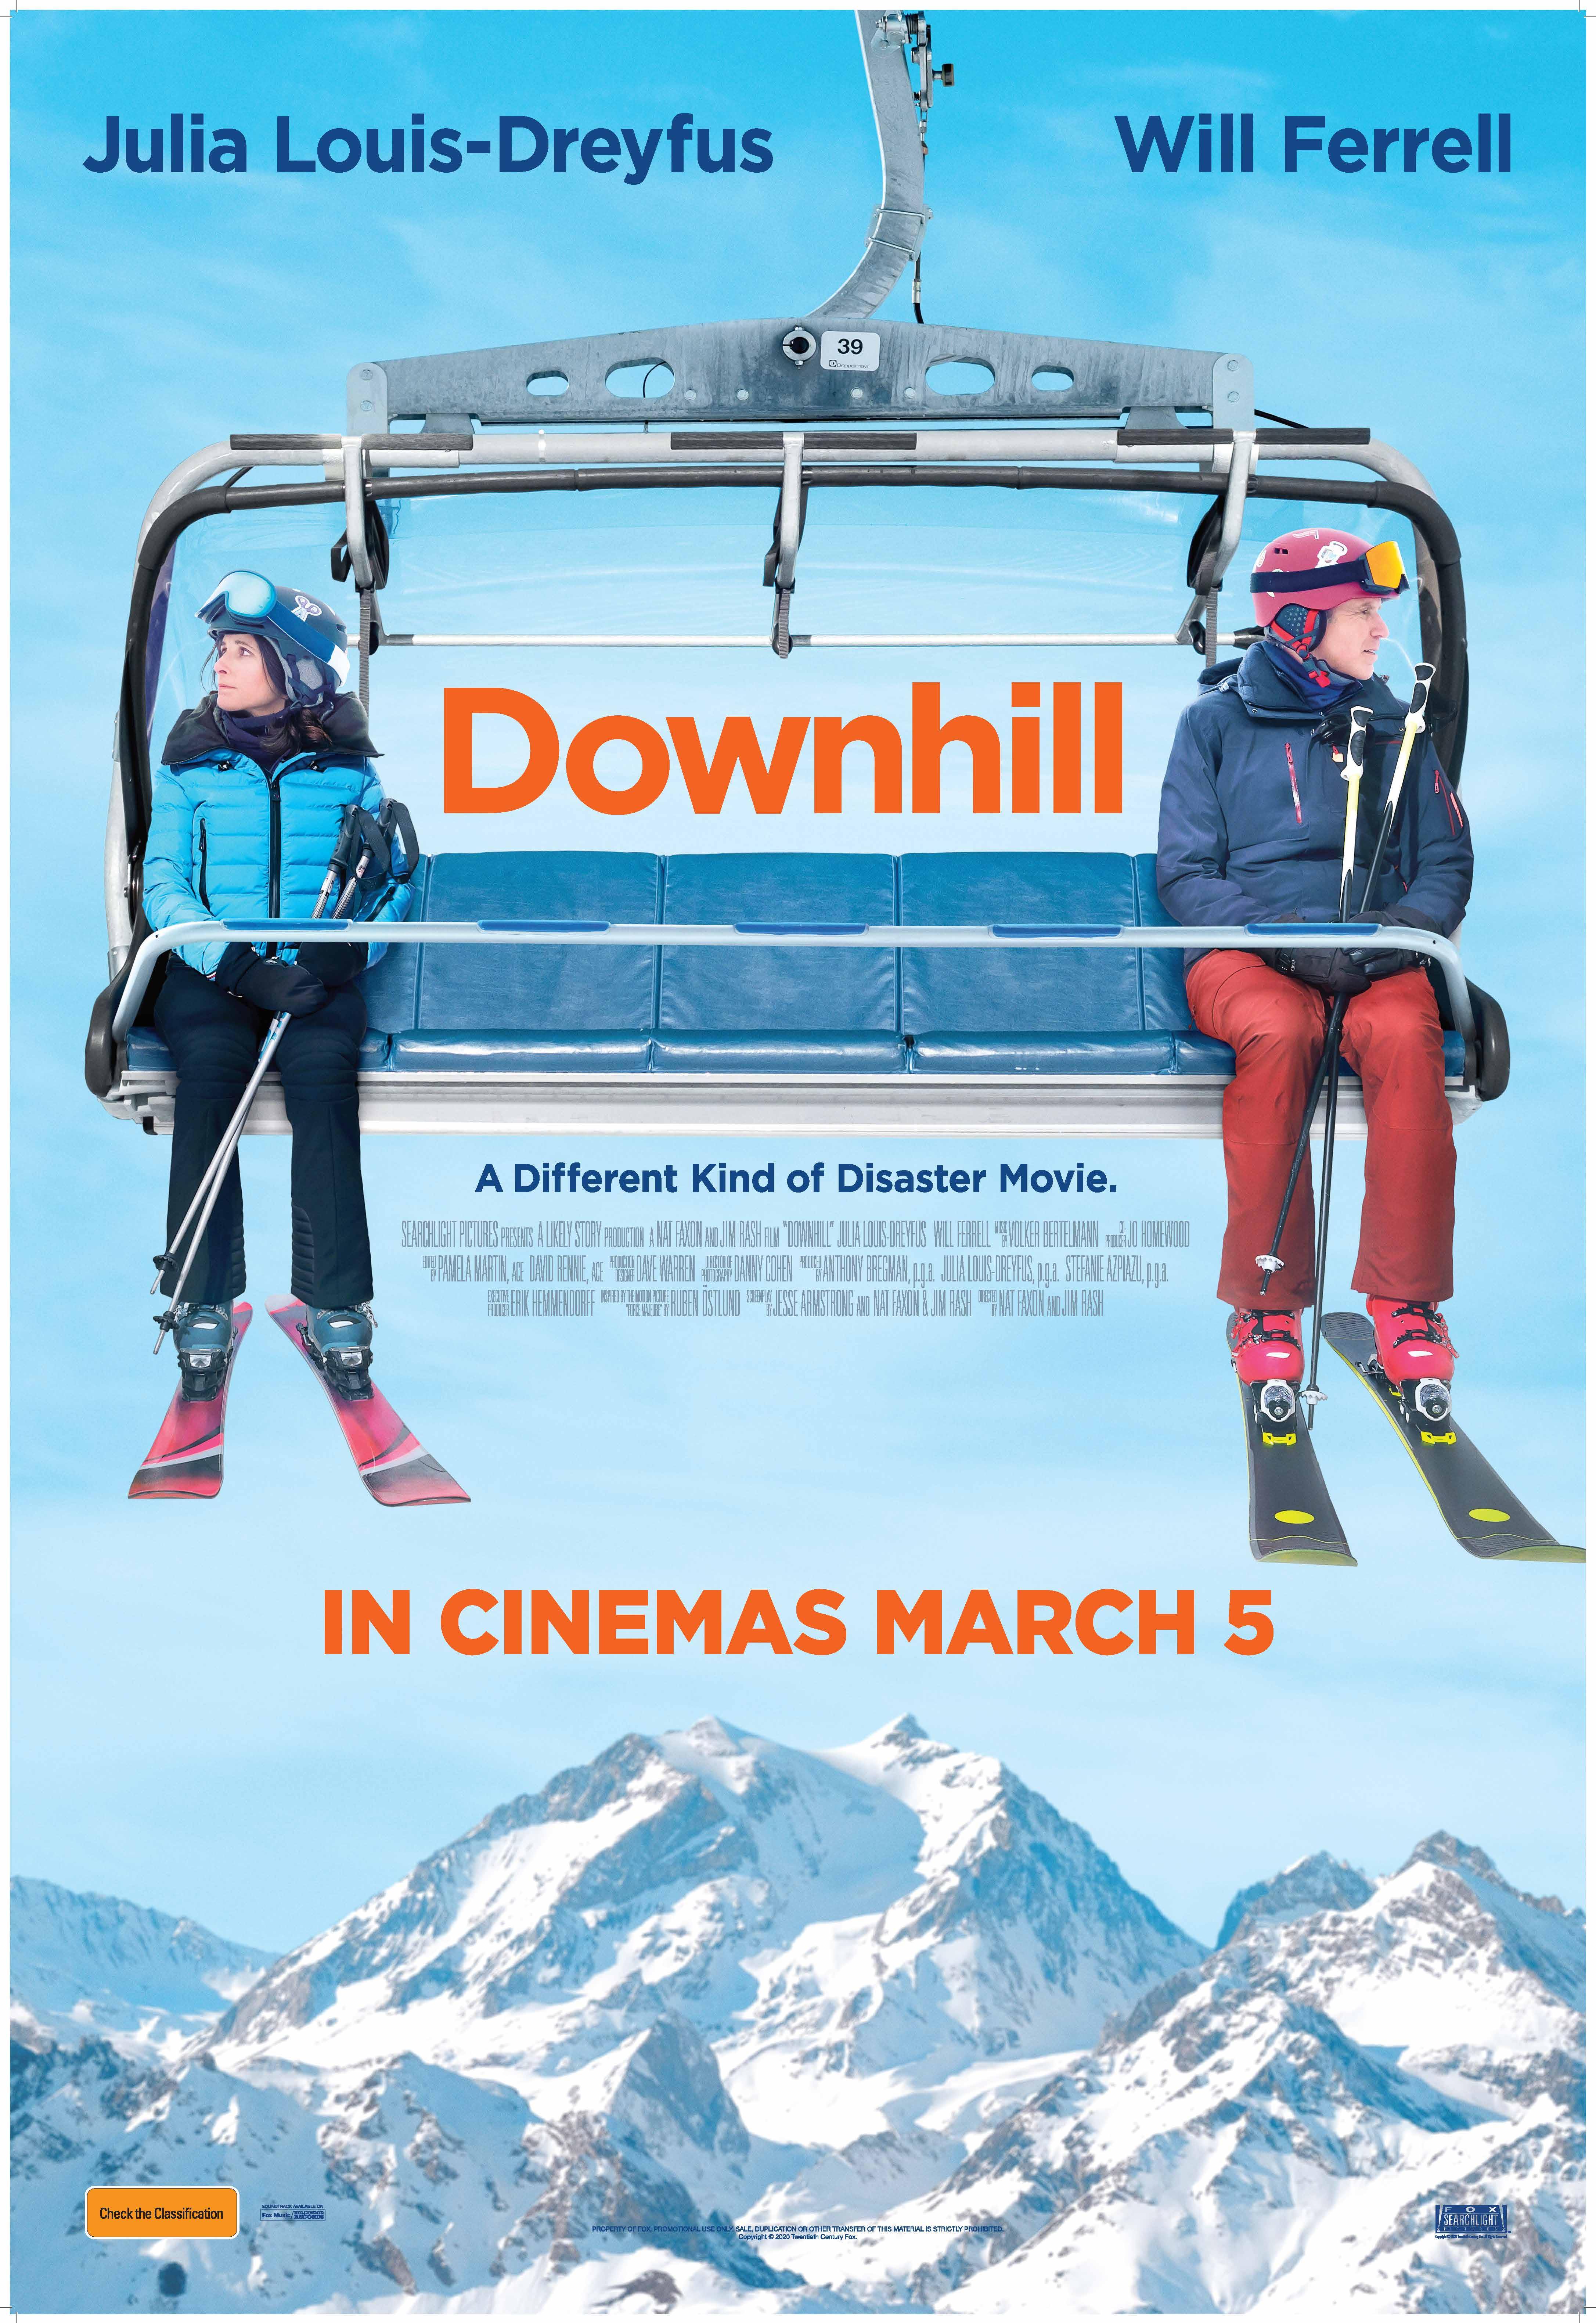 000000000000000Downhill-Movie-Keyart_In-Cinemas-March-5